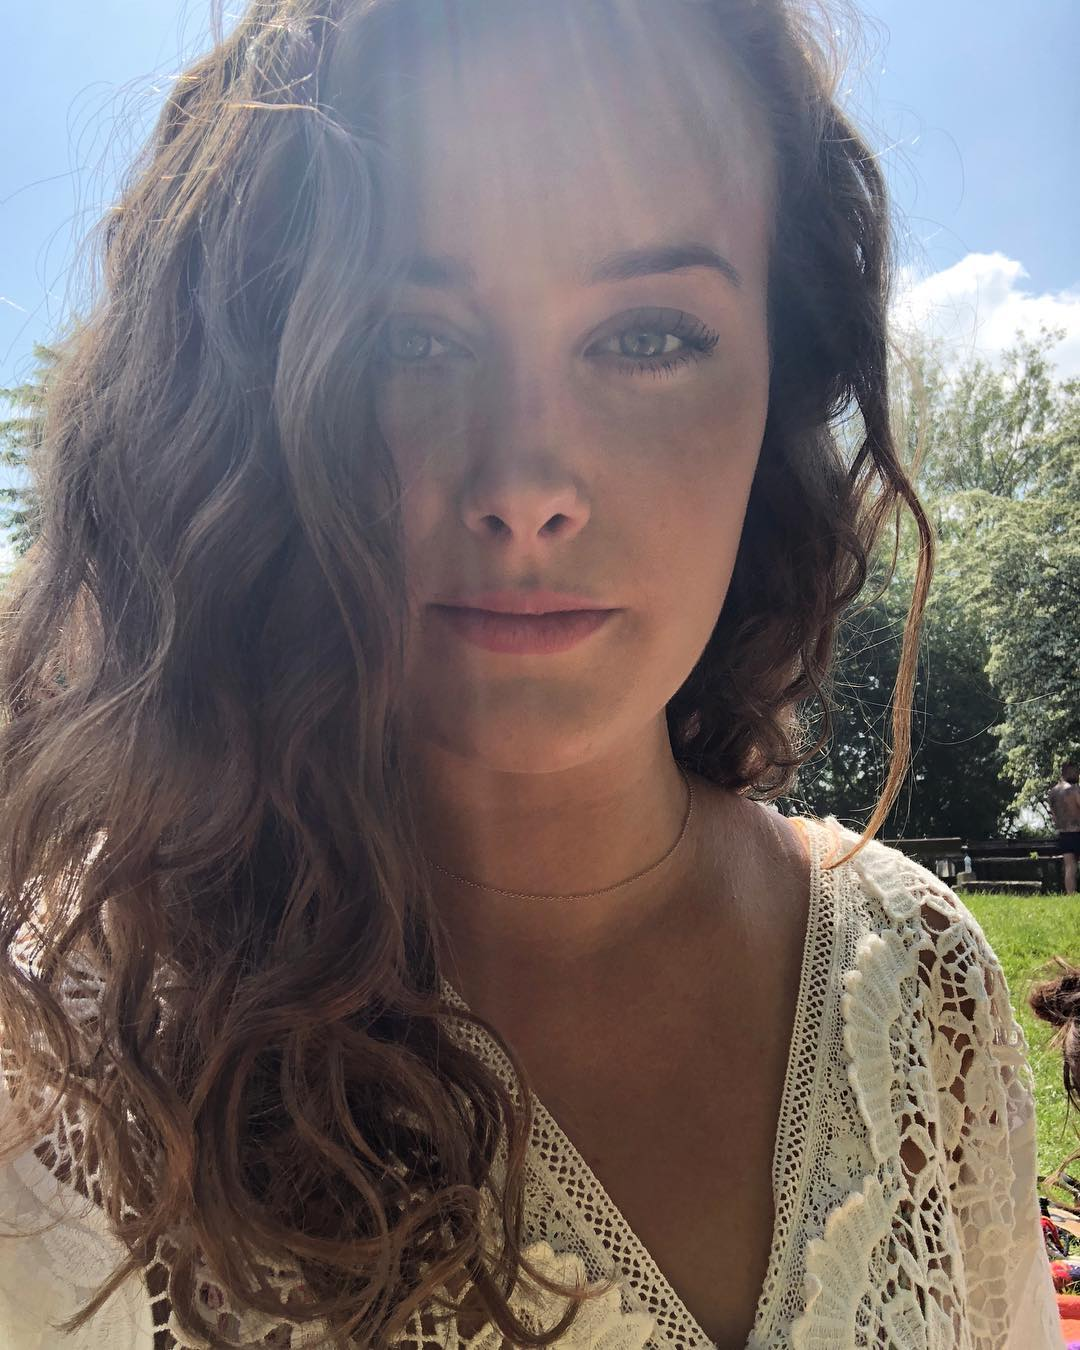 Forum on this topic: Sophie Stuckey (born 1991), april-pearson-born-1989/